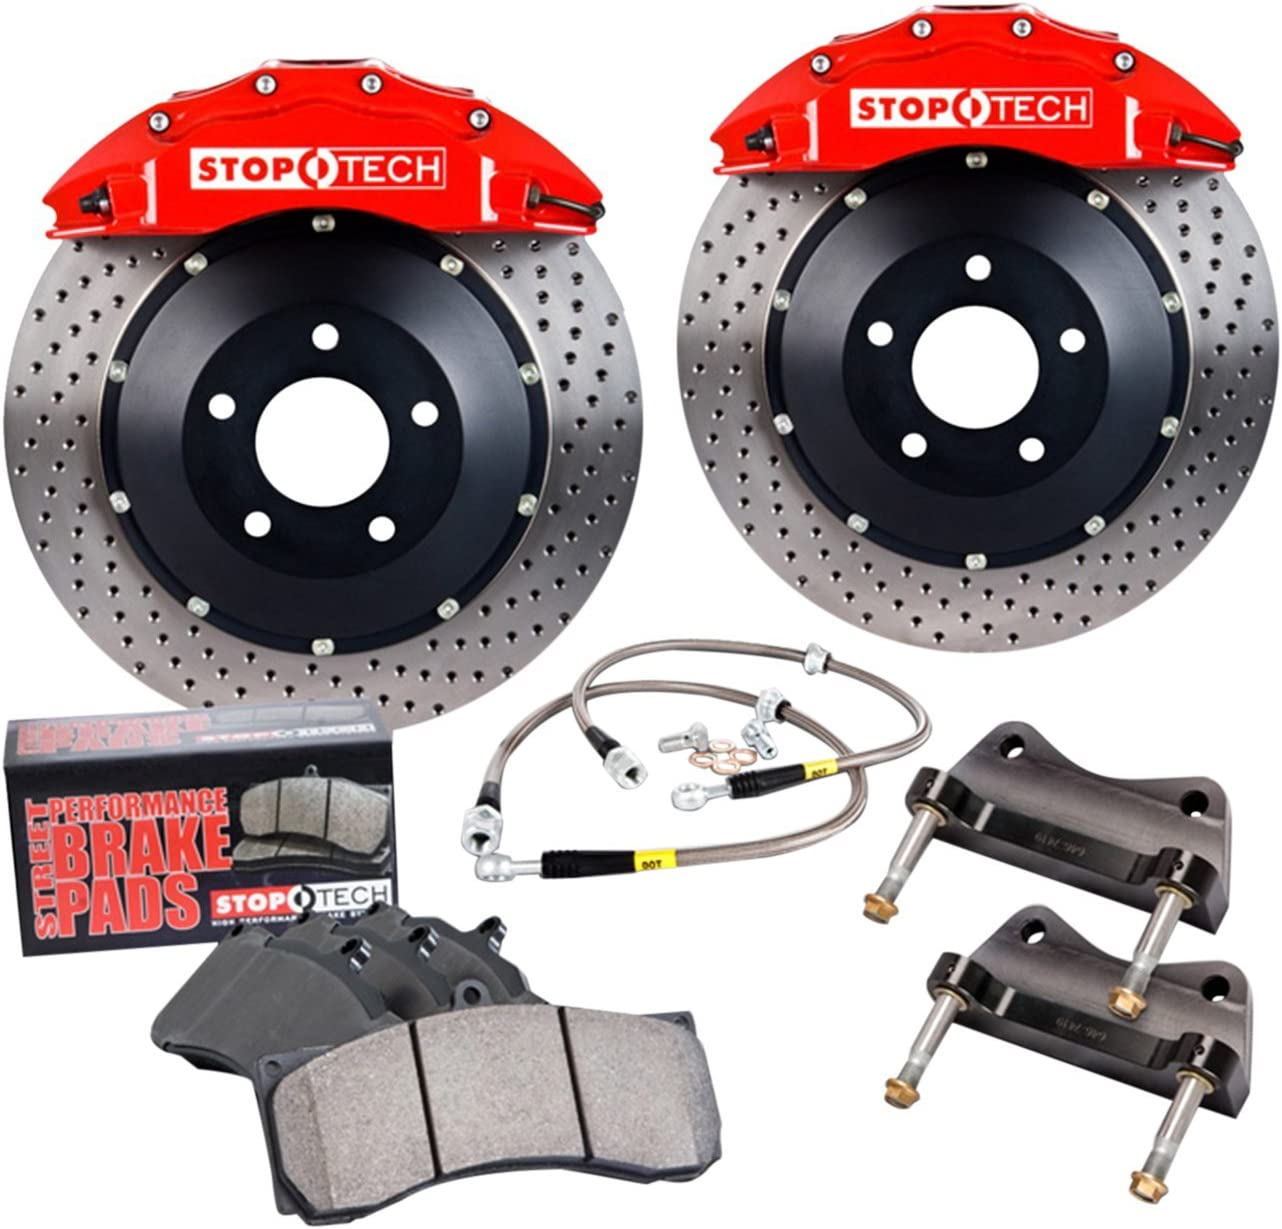 OFFicial StopTech 83.839.0023.R2 Big Brake 1 Kit SALENEW very popular! Pack